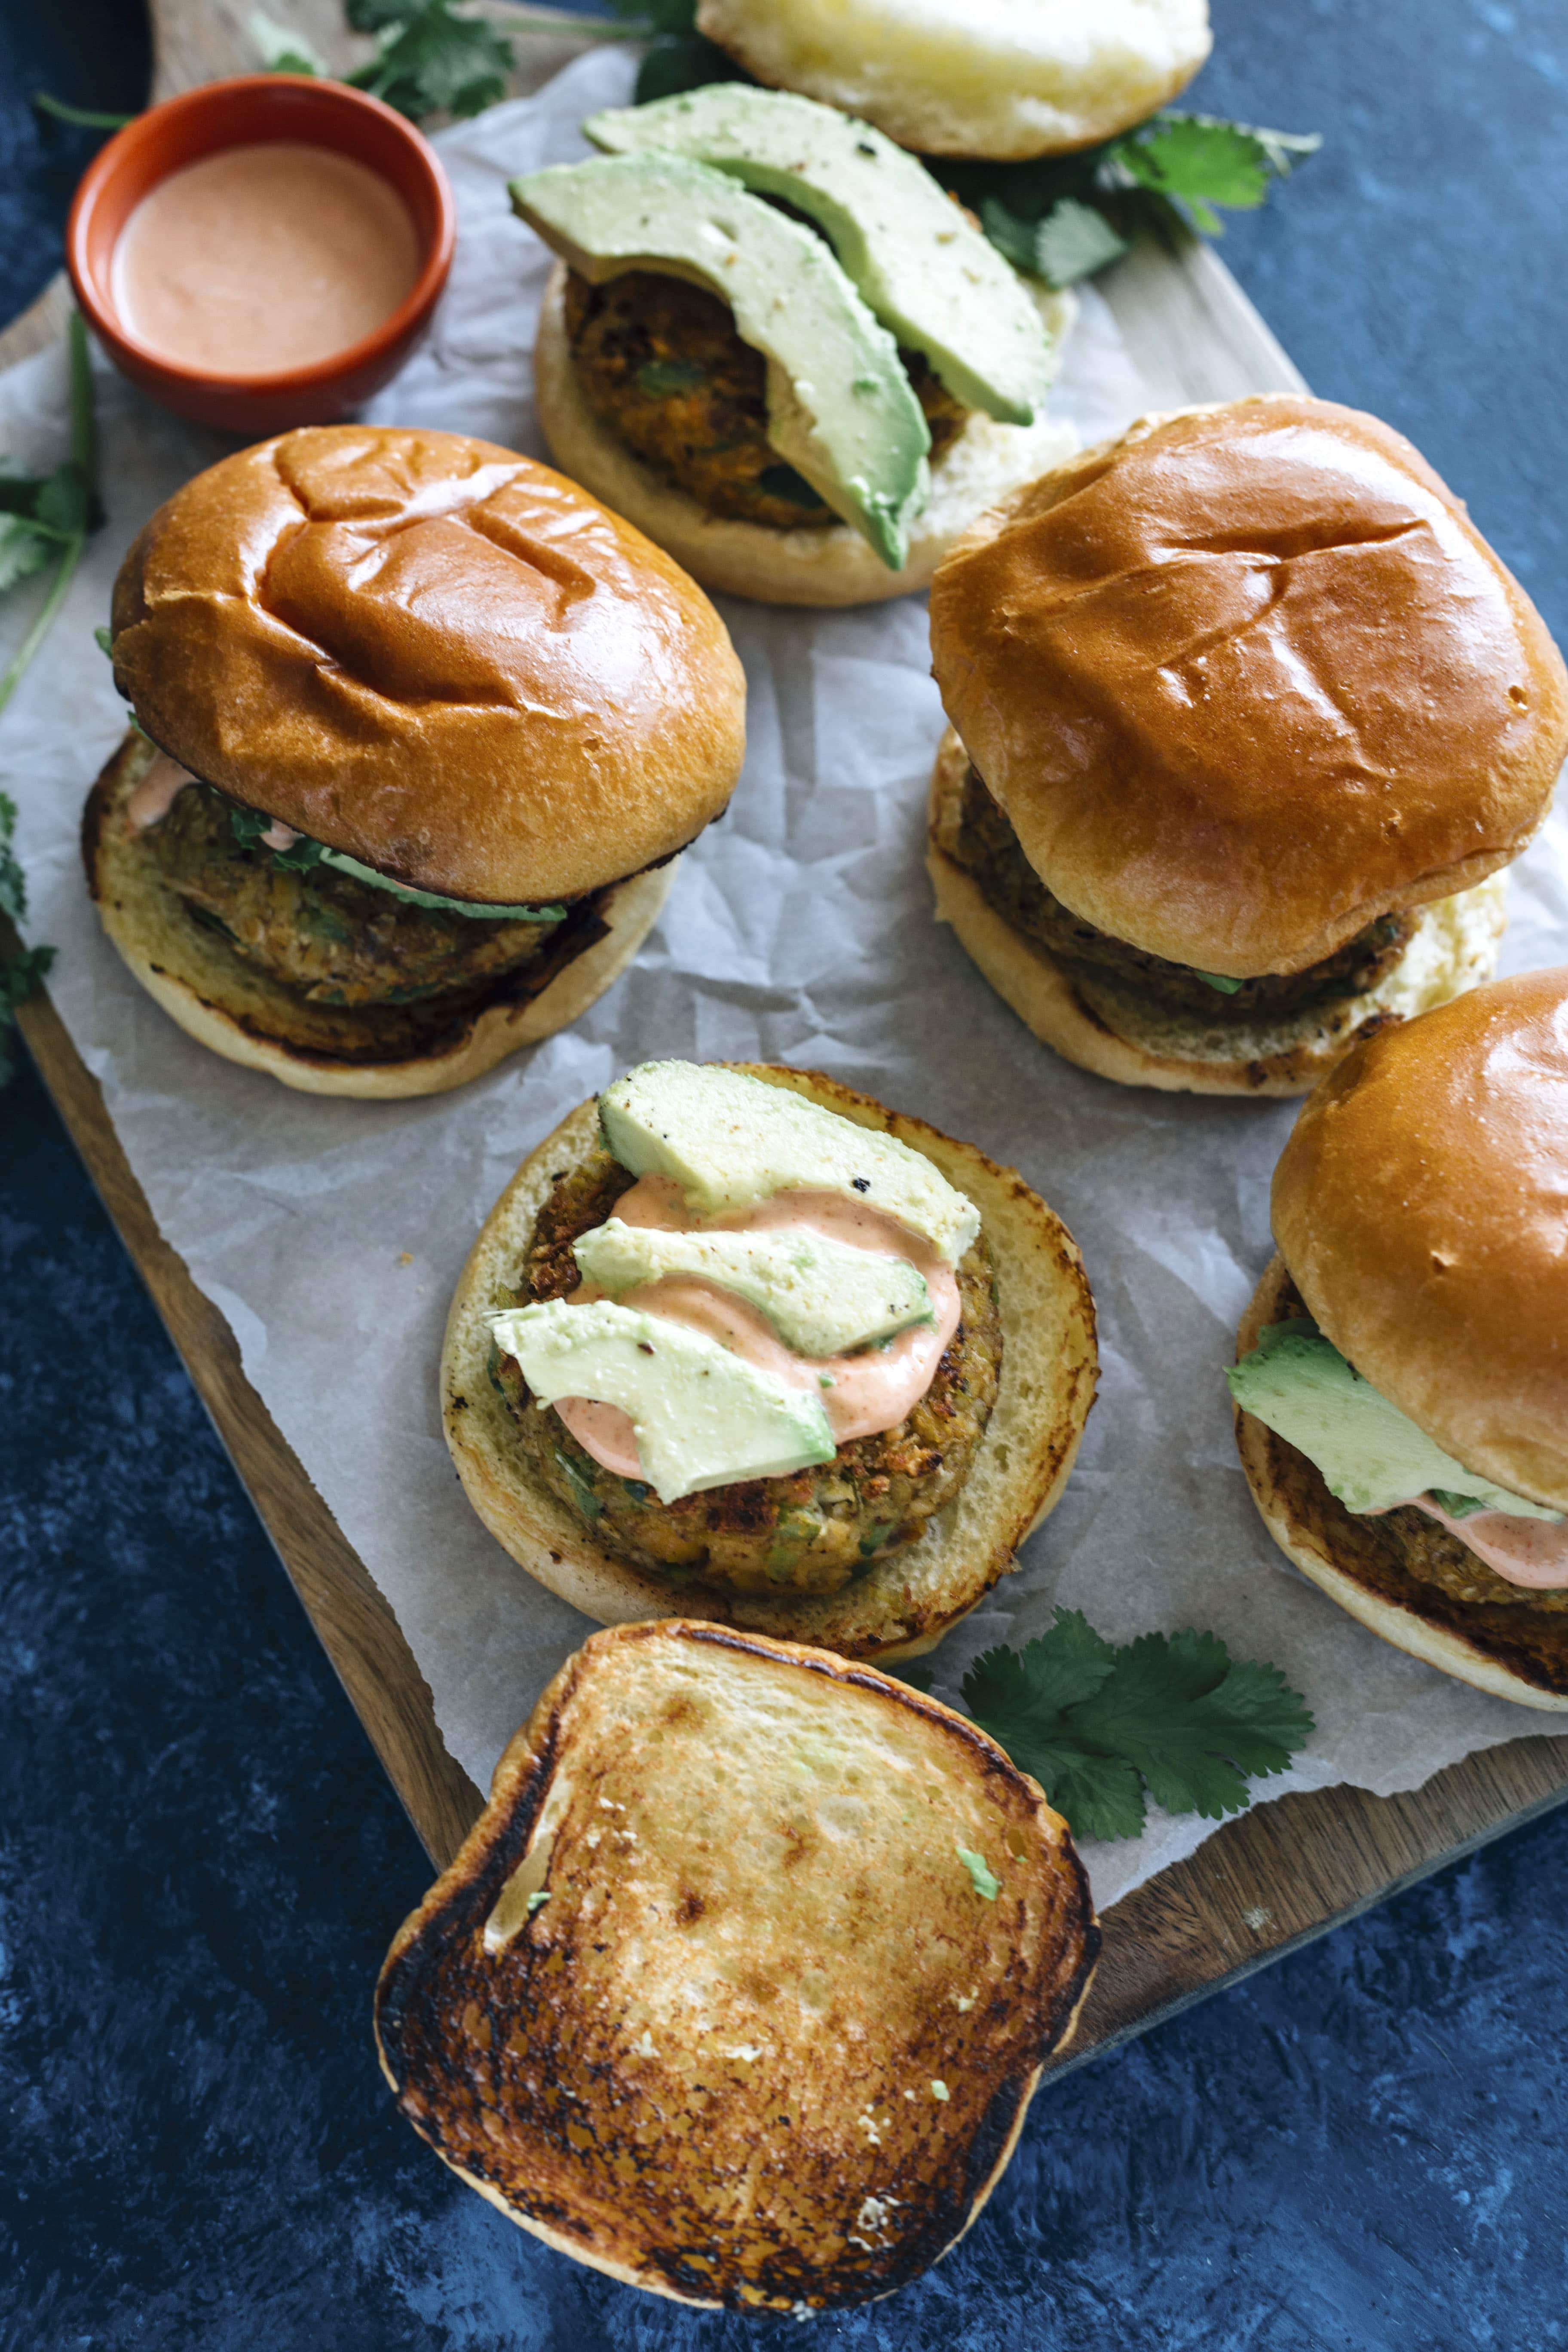 Cajun Chickpea Burgers | Easy veggie burgers made with chickpeas in just 30 minutes!